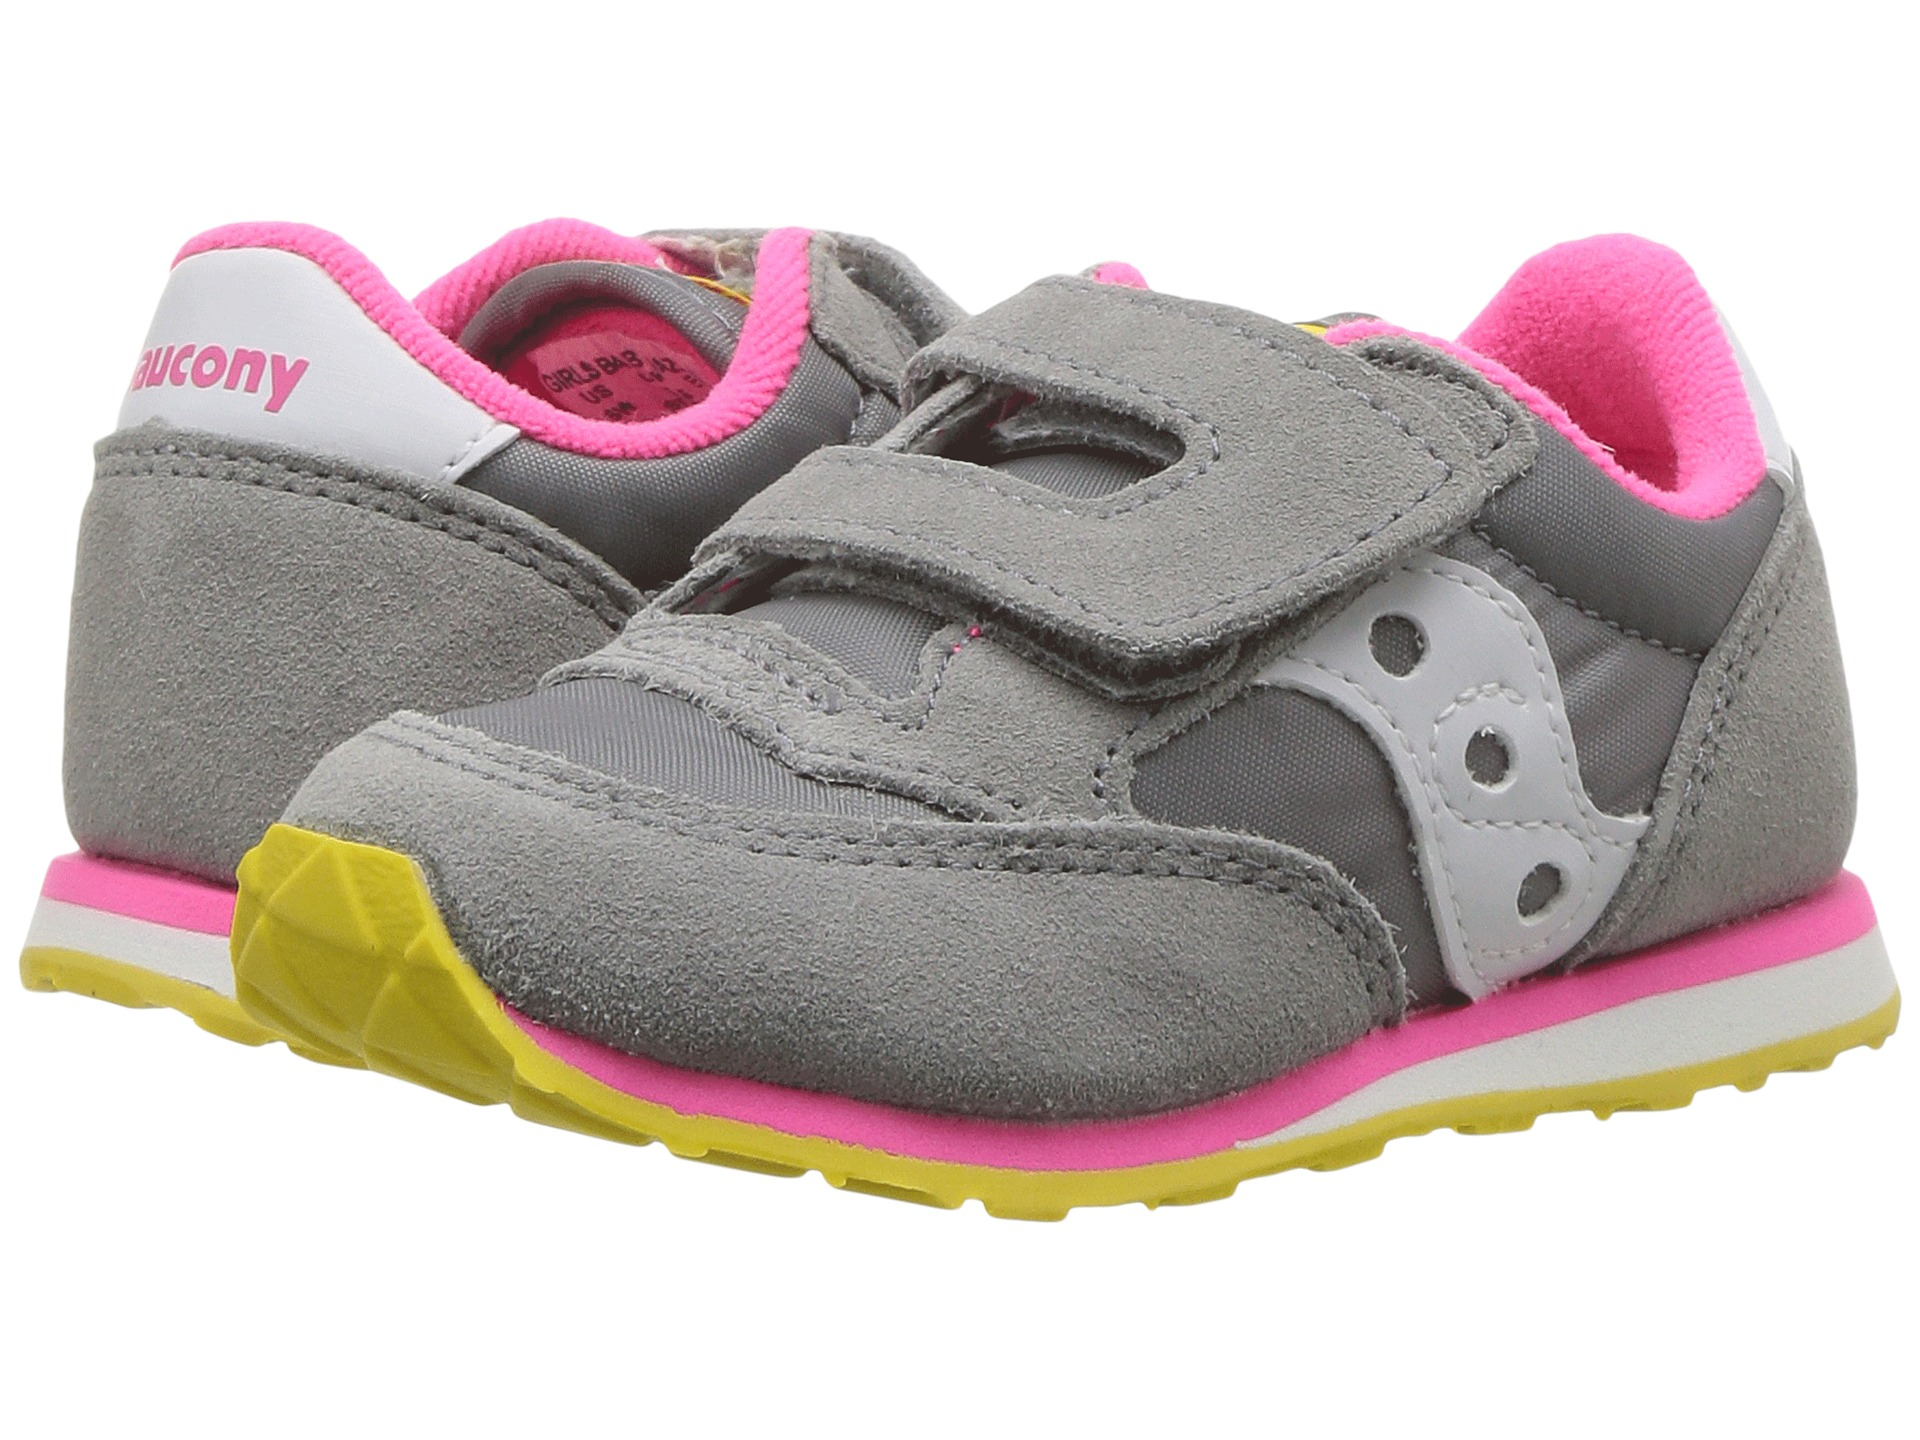 674d63e7a Buy saucony toddler shoe size chart   Up to OFF55% Discounted